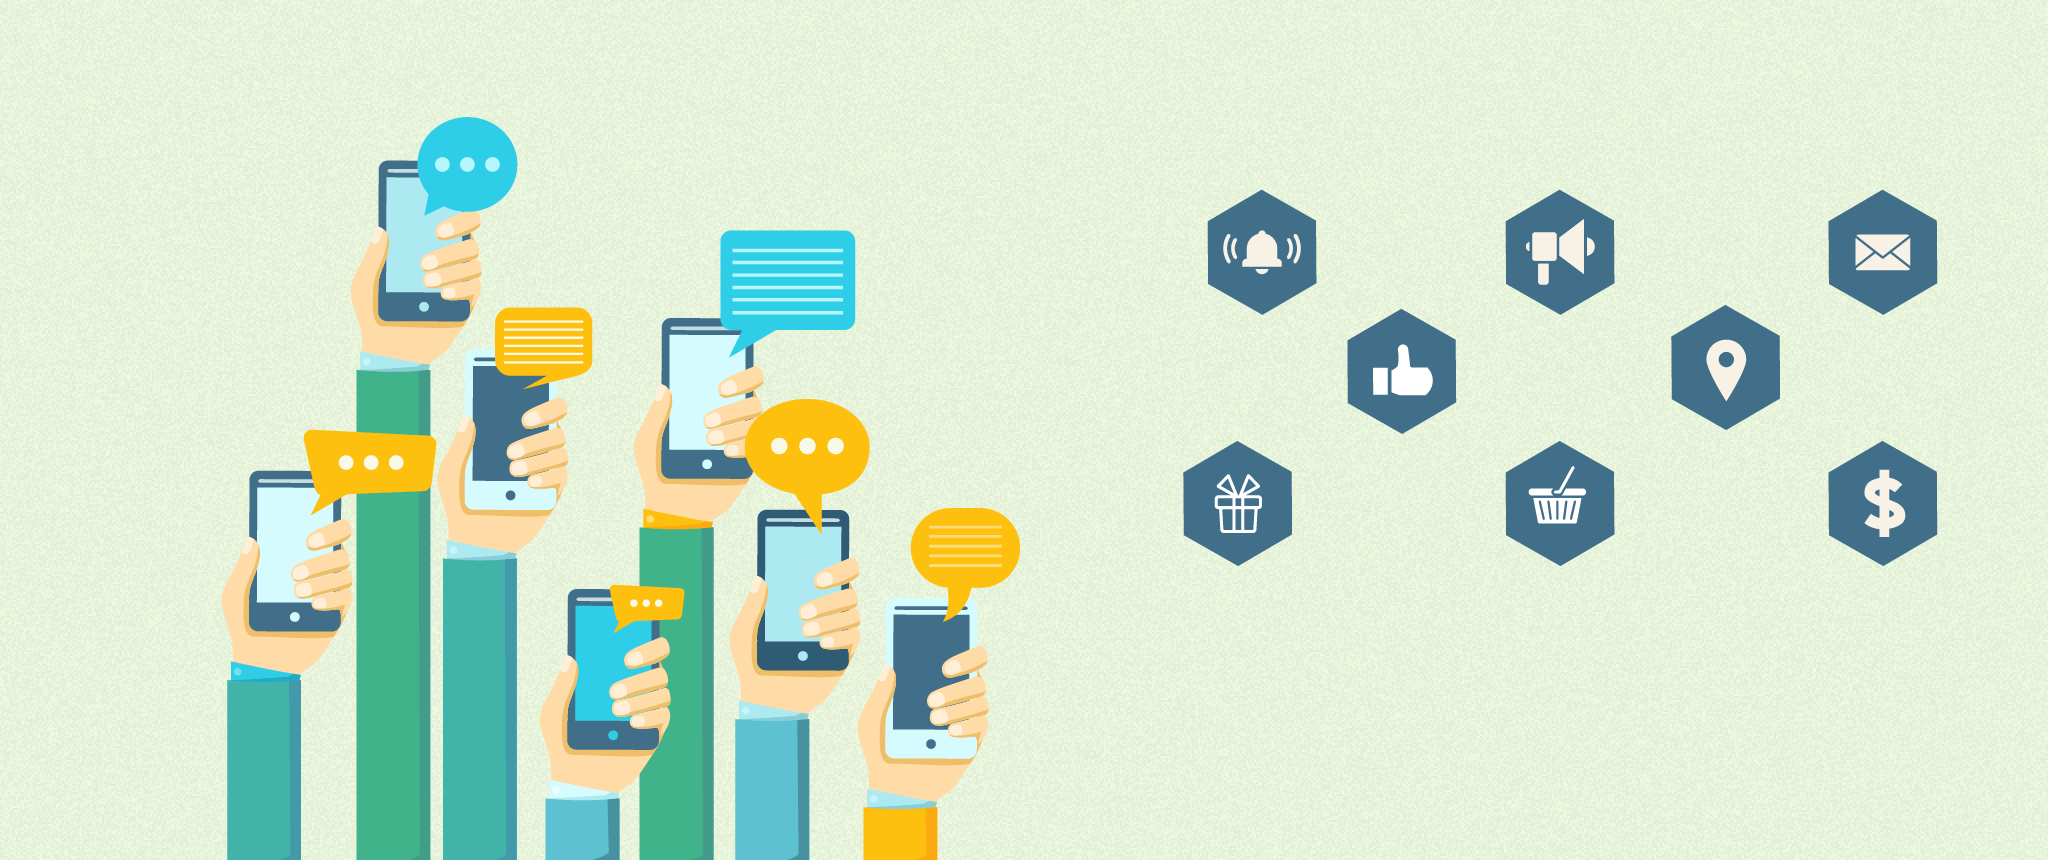 The Ultimate Guide to Writing Retention-Boosting Push Notifications